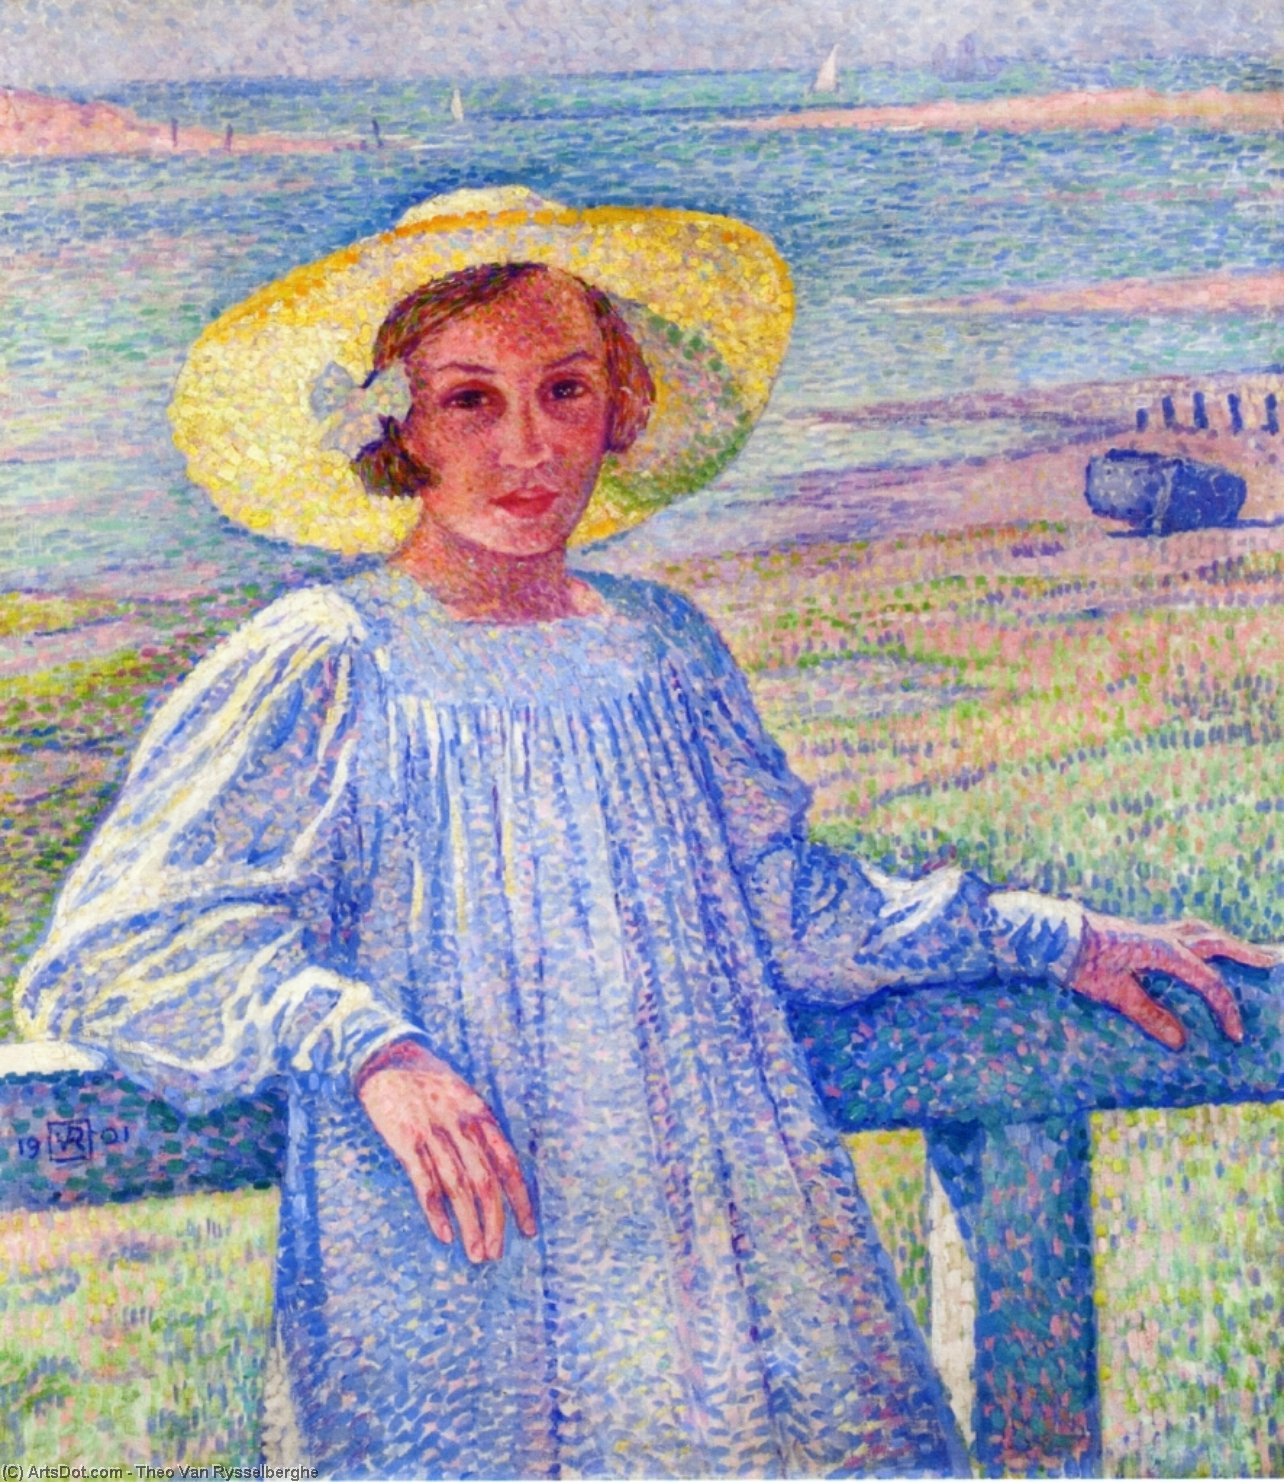 Young Girl in a Straw Hat, Oil On Canvas by Theo Van Rysselberghe (1862-1926, Belgium)